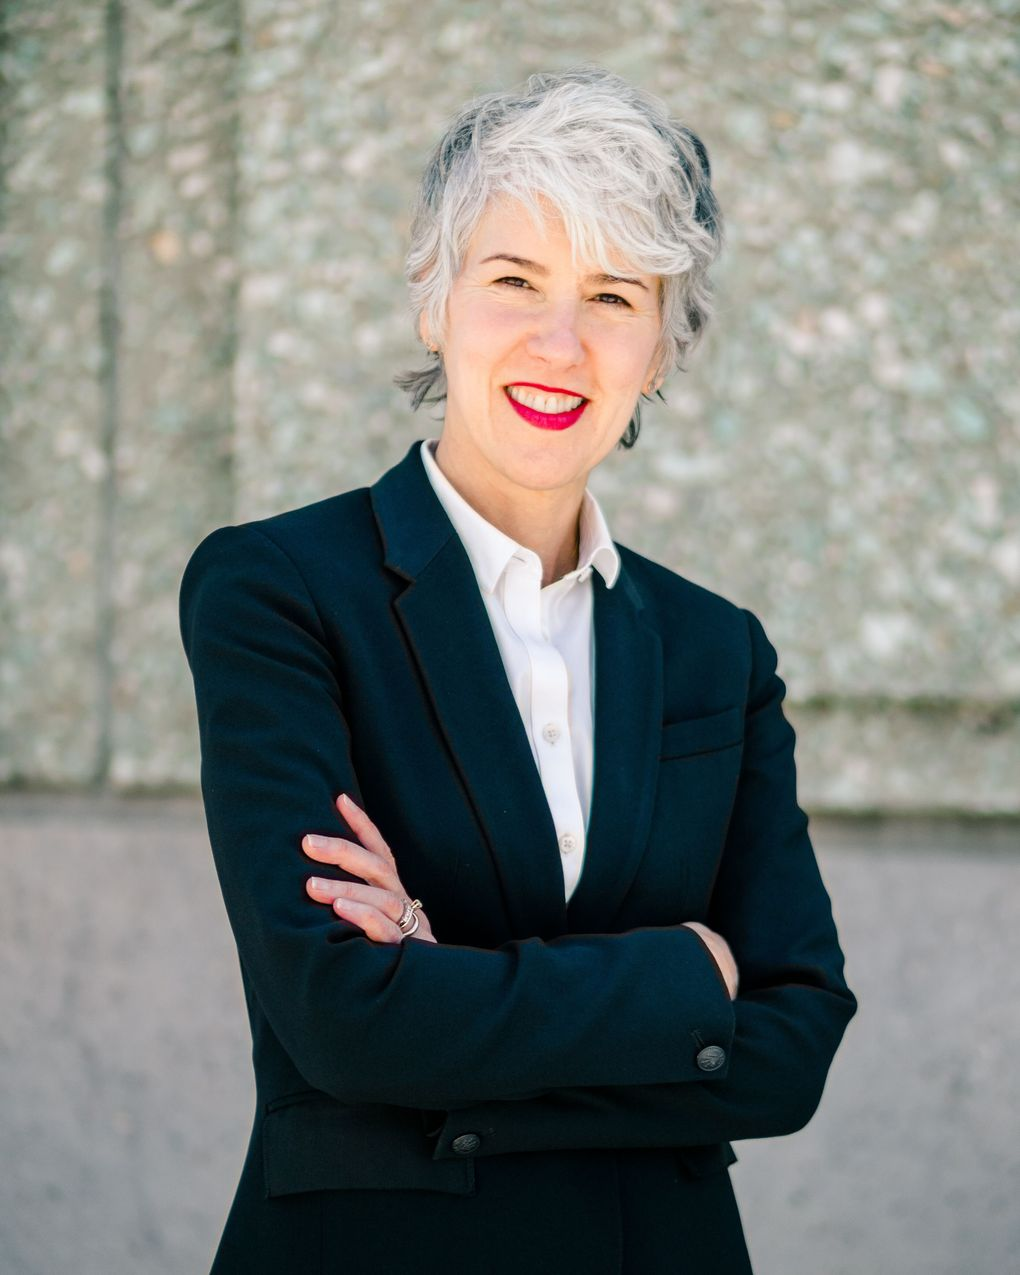 Amada Cruz, director and CEO of Seattle Art Museum, says the institution is losing $500,000 per month as a result of the coronavirus lockdown. (Airi Katsuta)